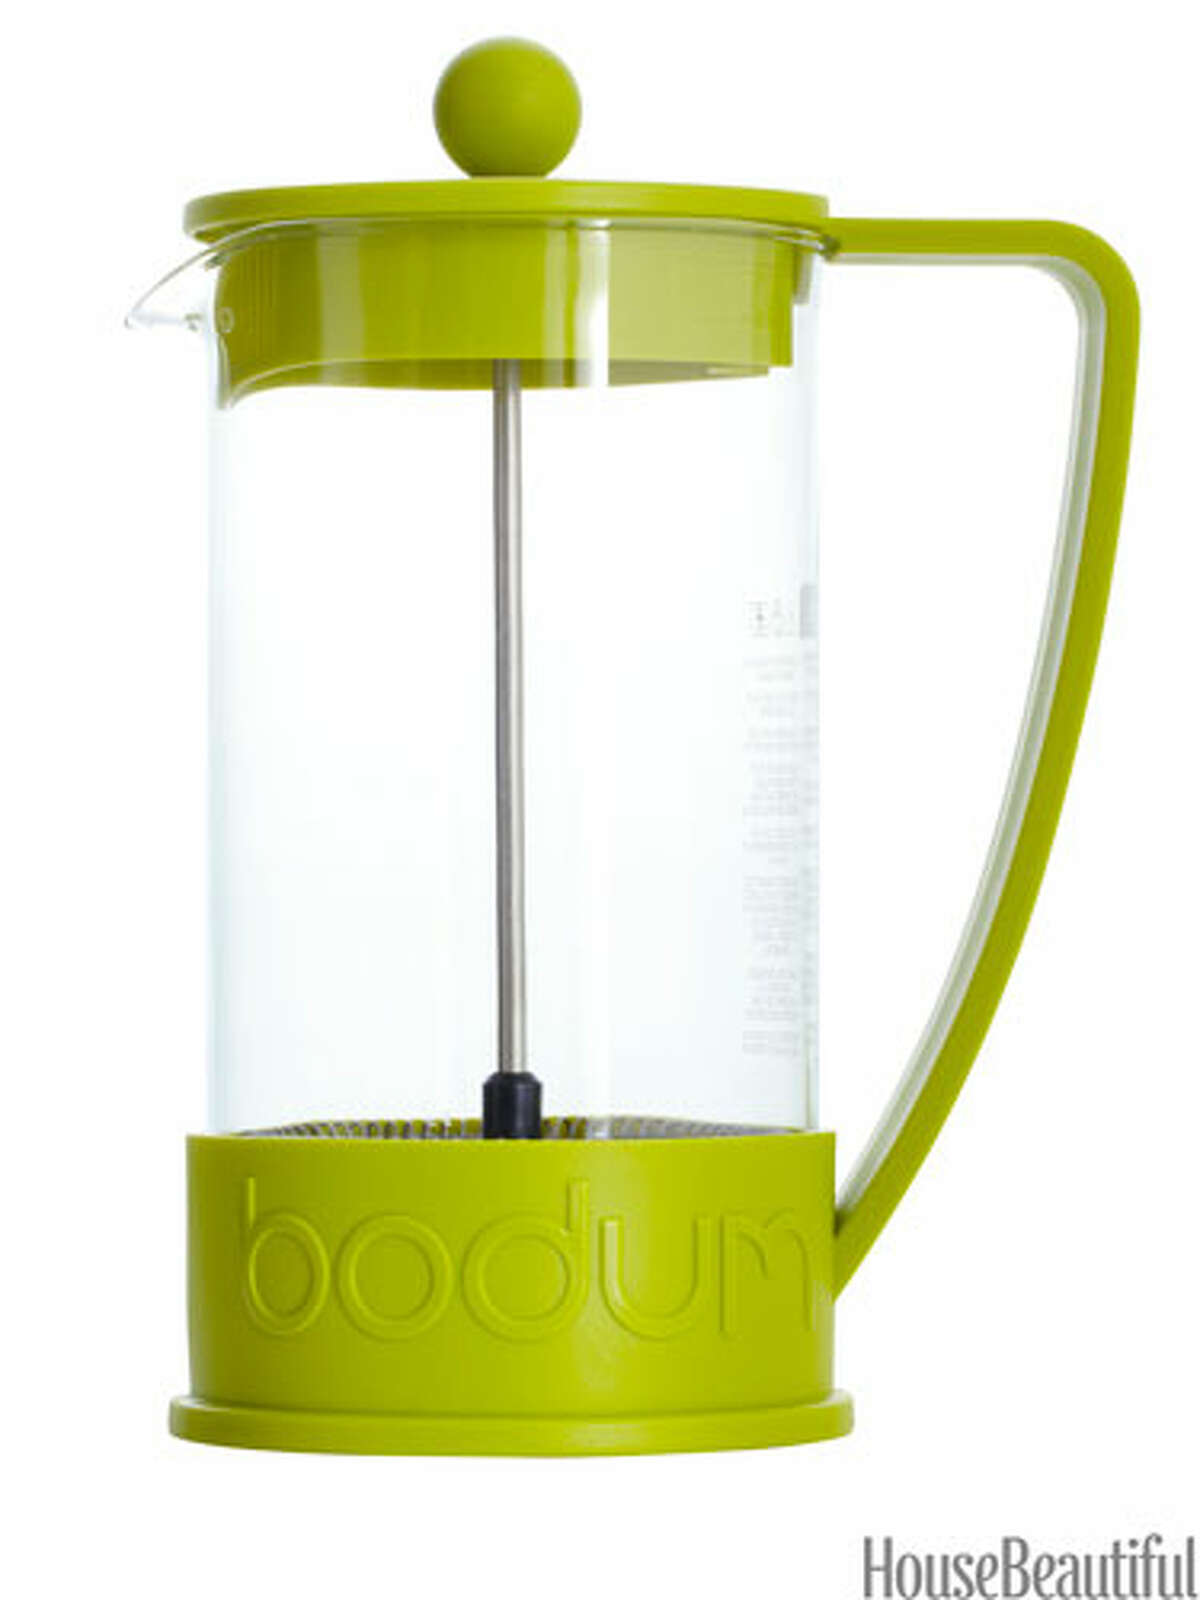 French Press The classic coffee maker in a fresh green. Brazil French Press, $20. bodum.com